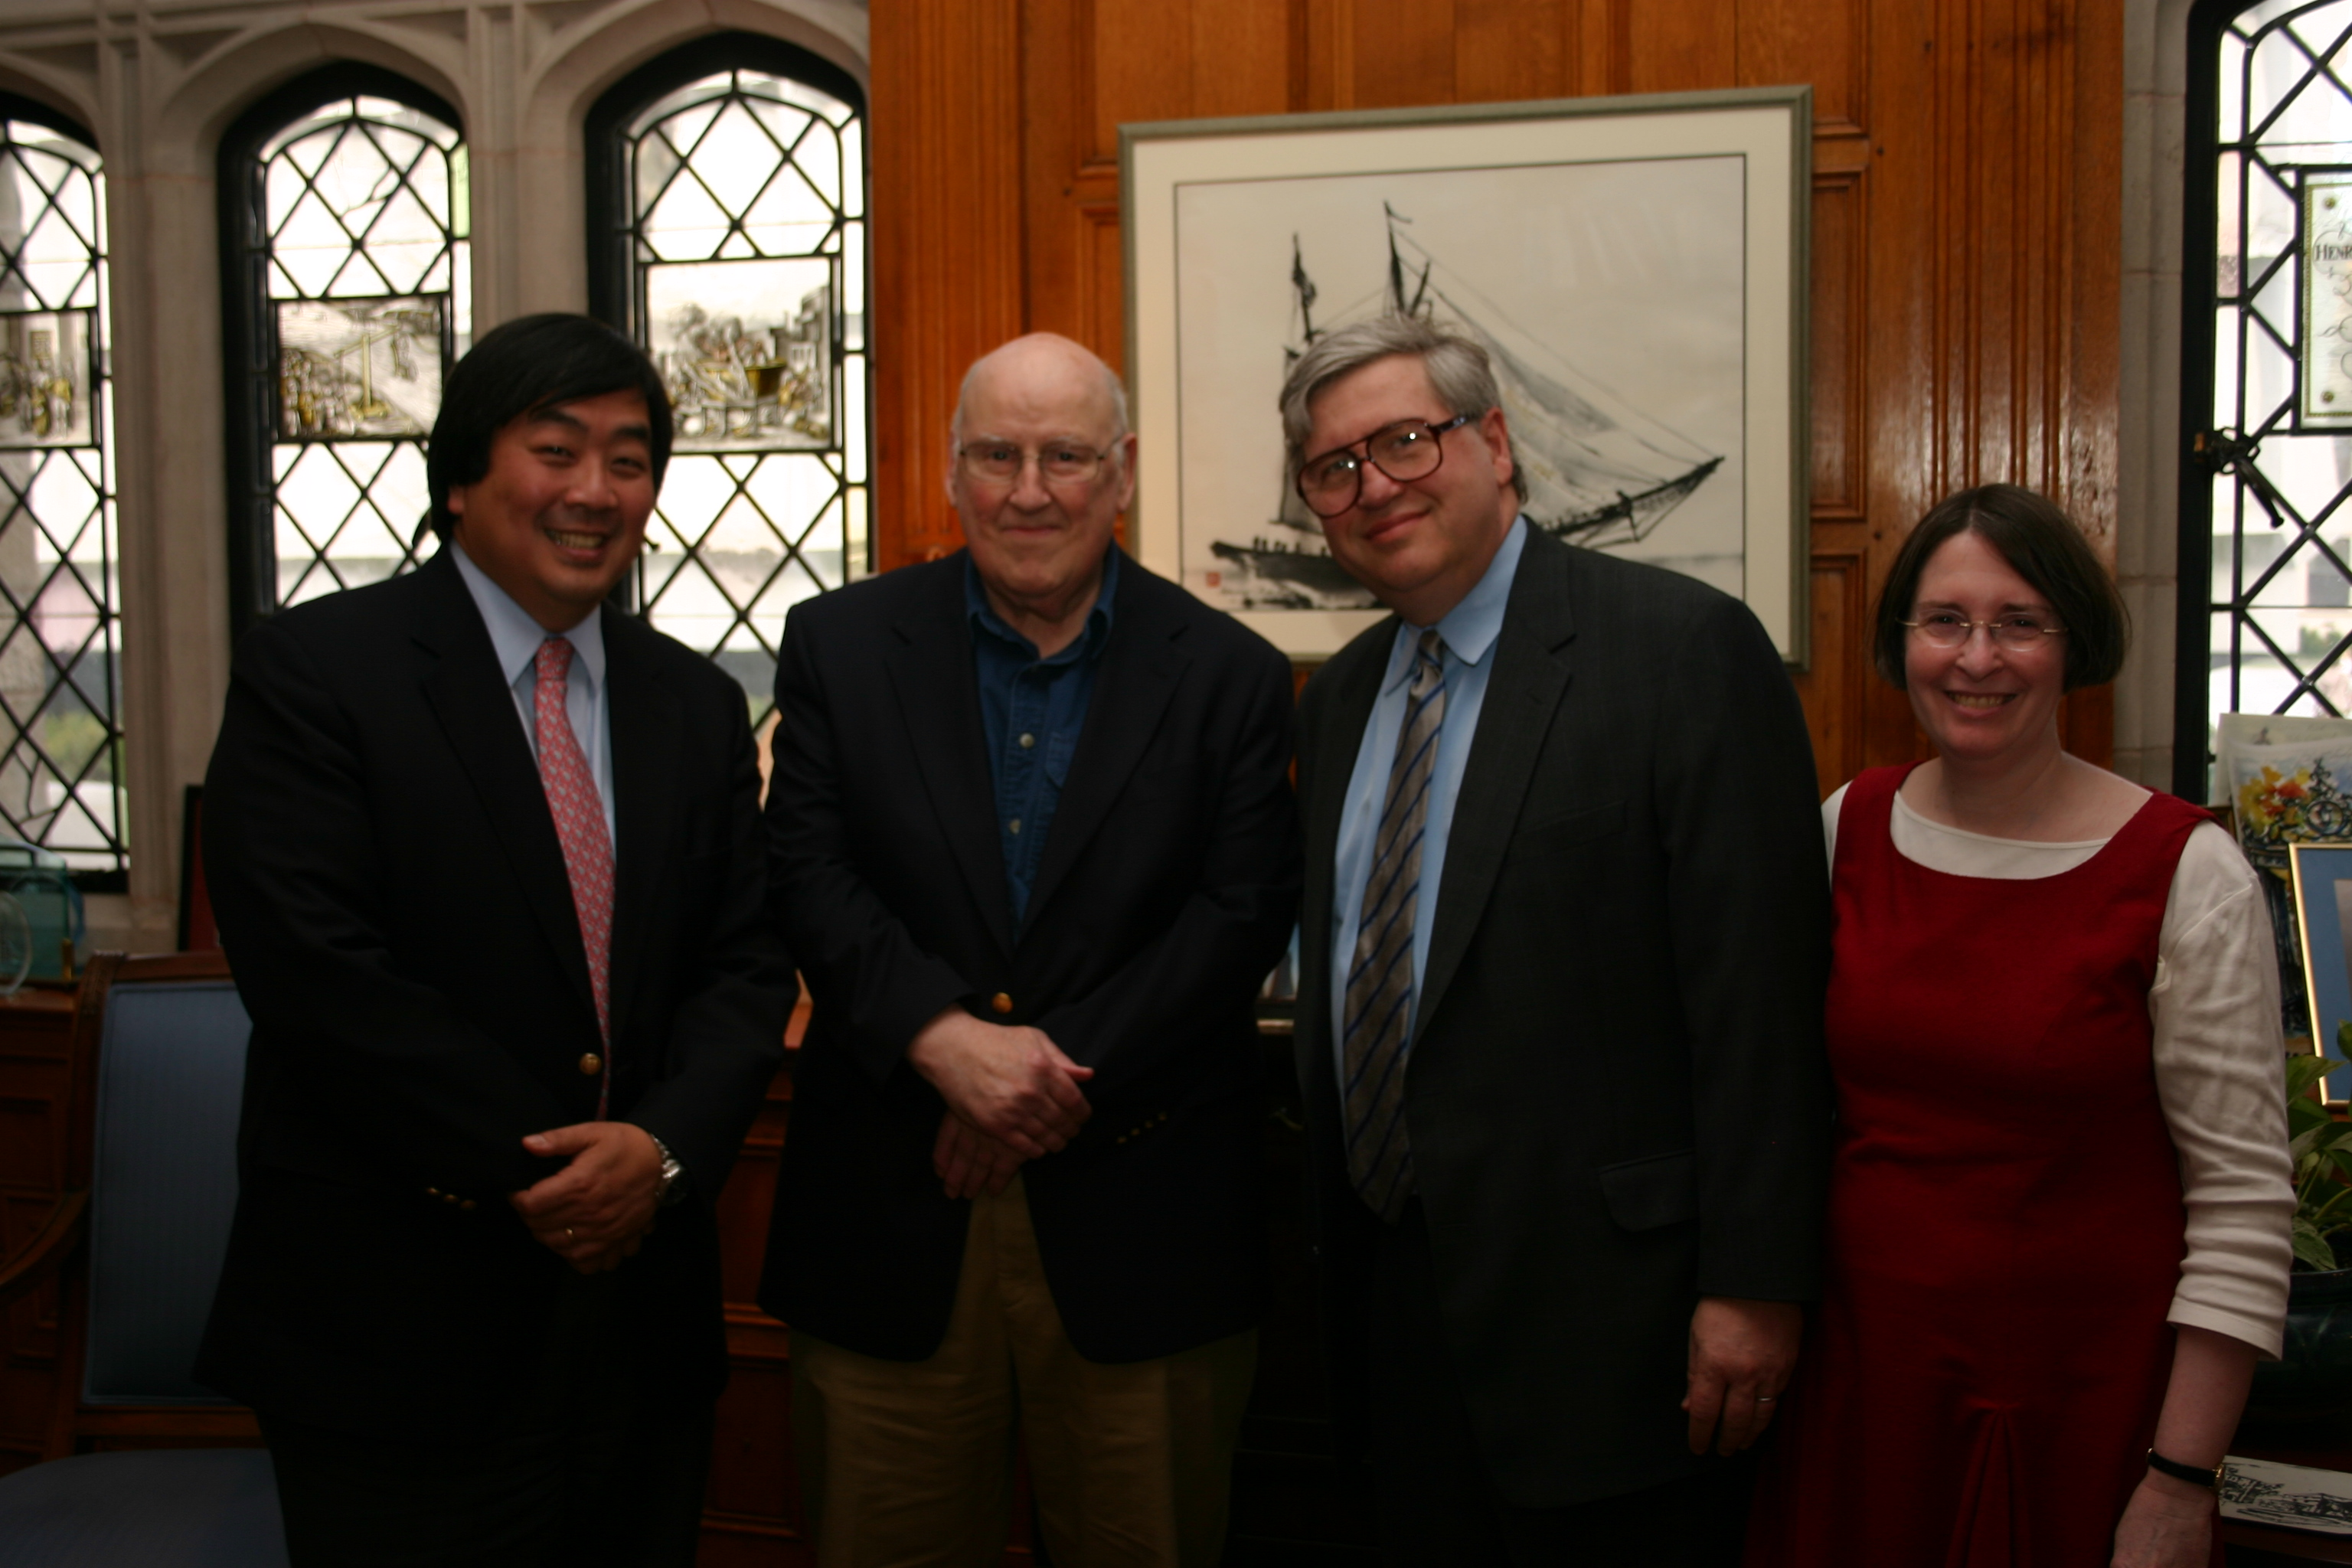 YLS Dean Harold Koh, Judge Ralph Winter '60, Northwestern Law Prof. Daniel Fischel, and YLS Prof. and Center Director Roberta Romano '80